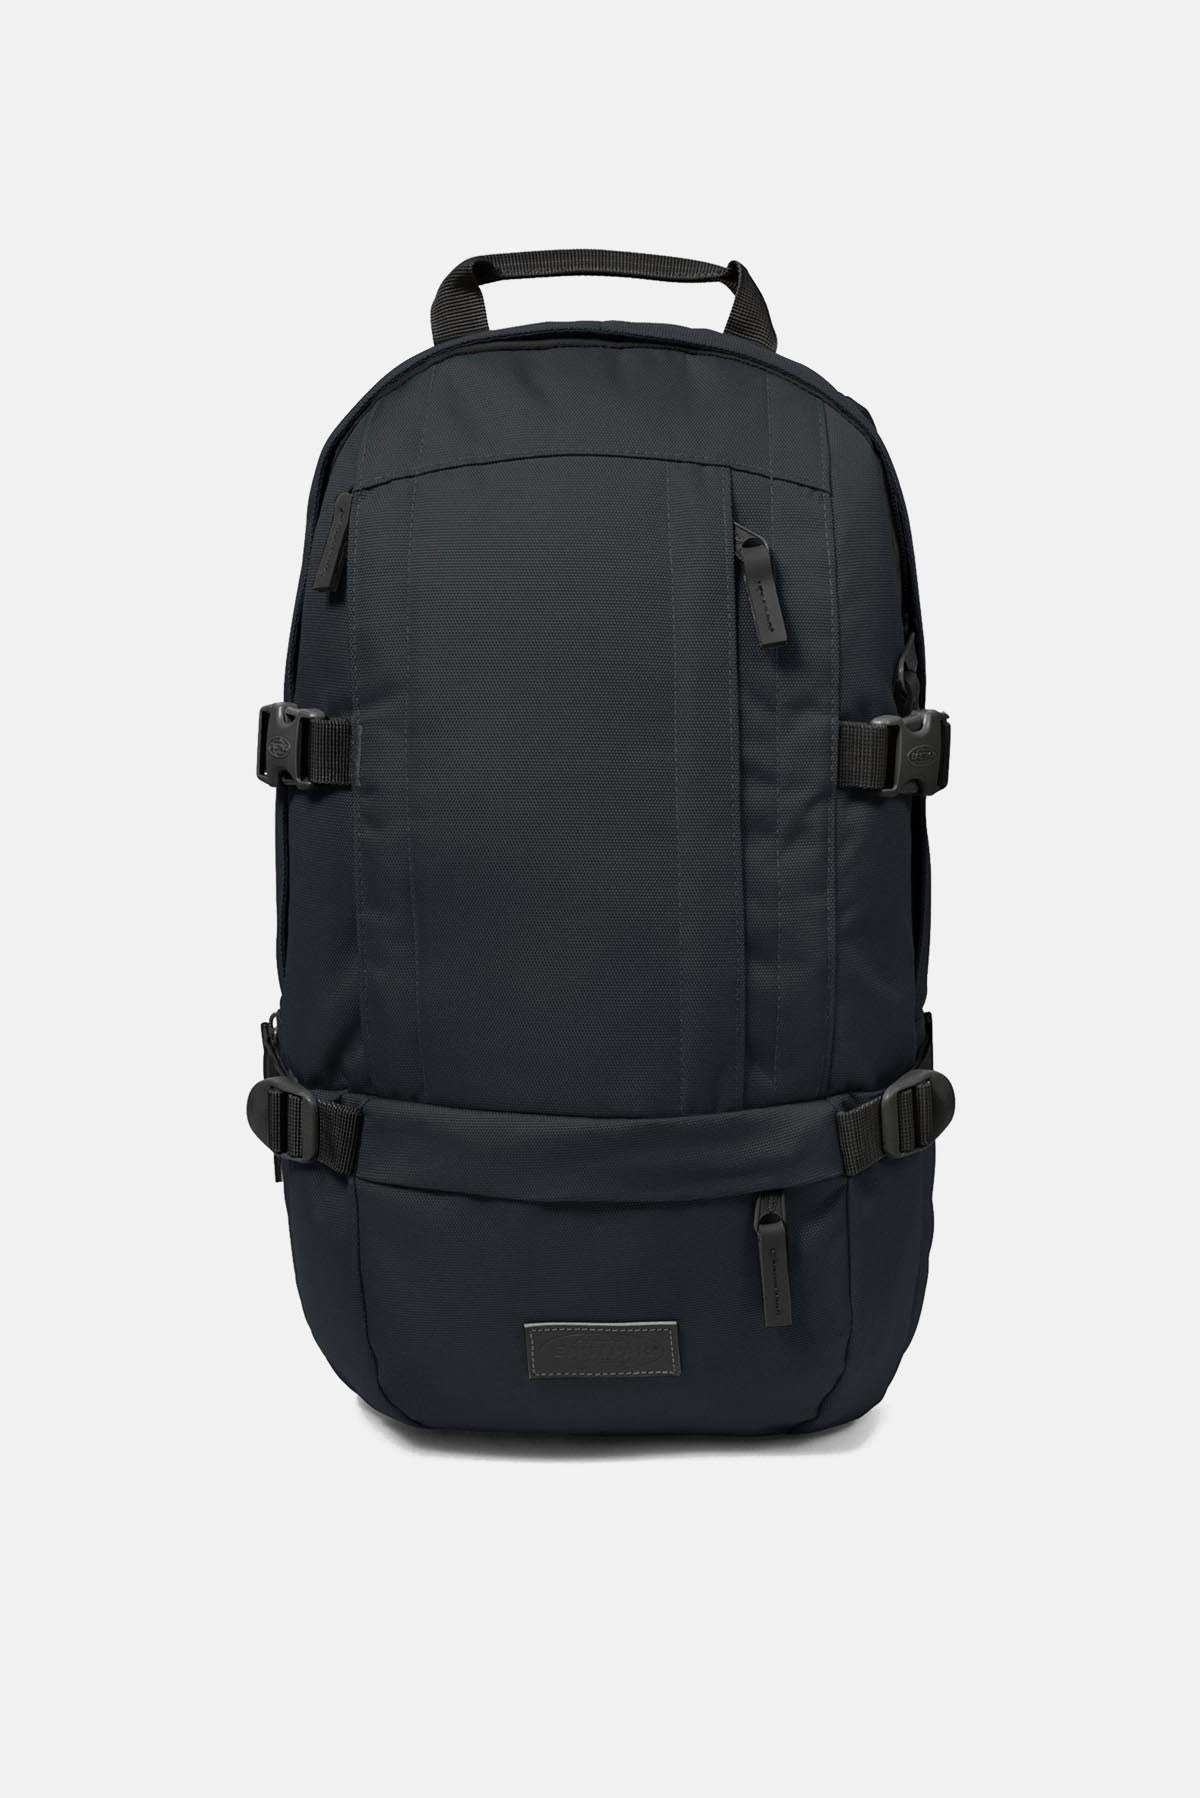 e704000a0212 Eastpak Floid Backpack available from Priory